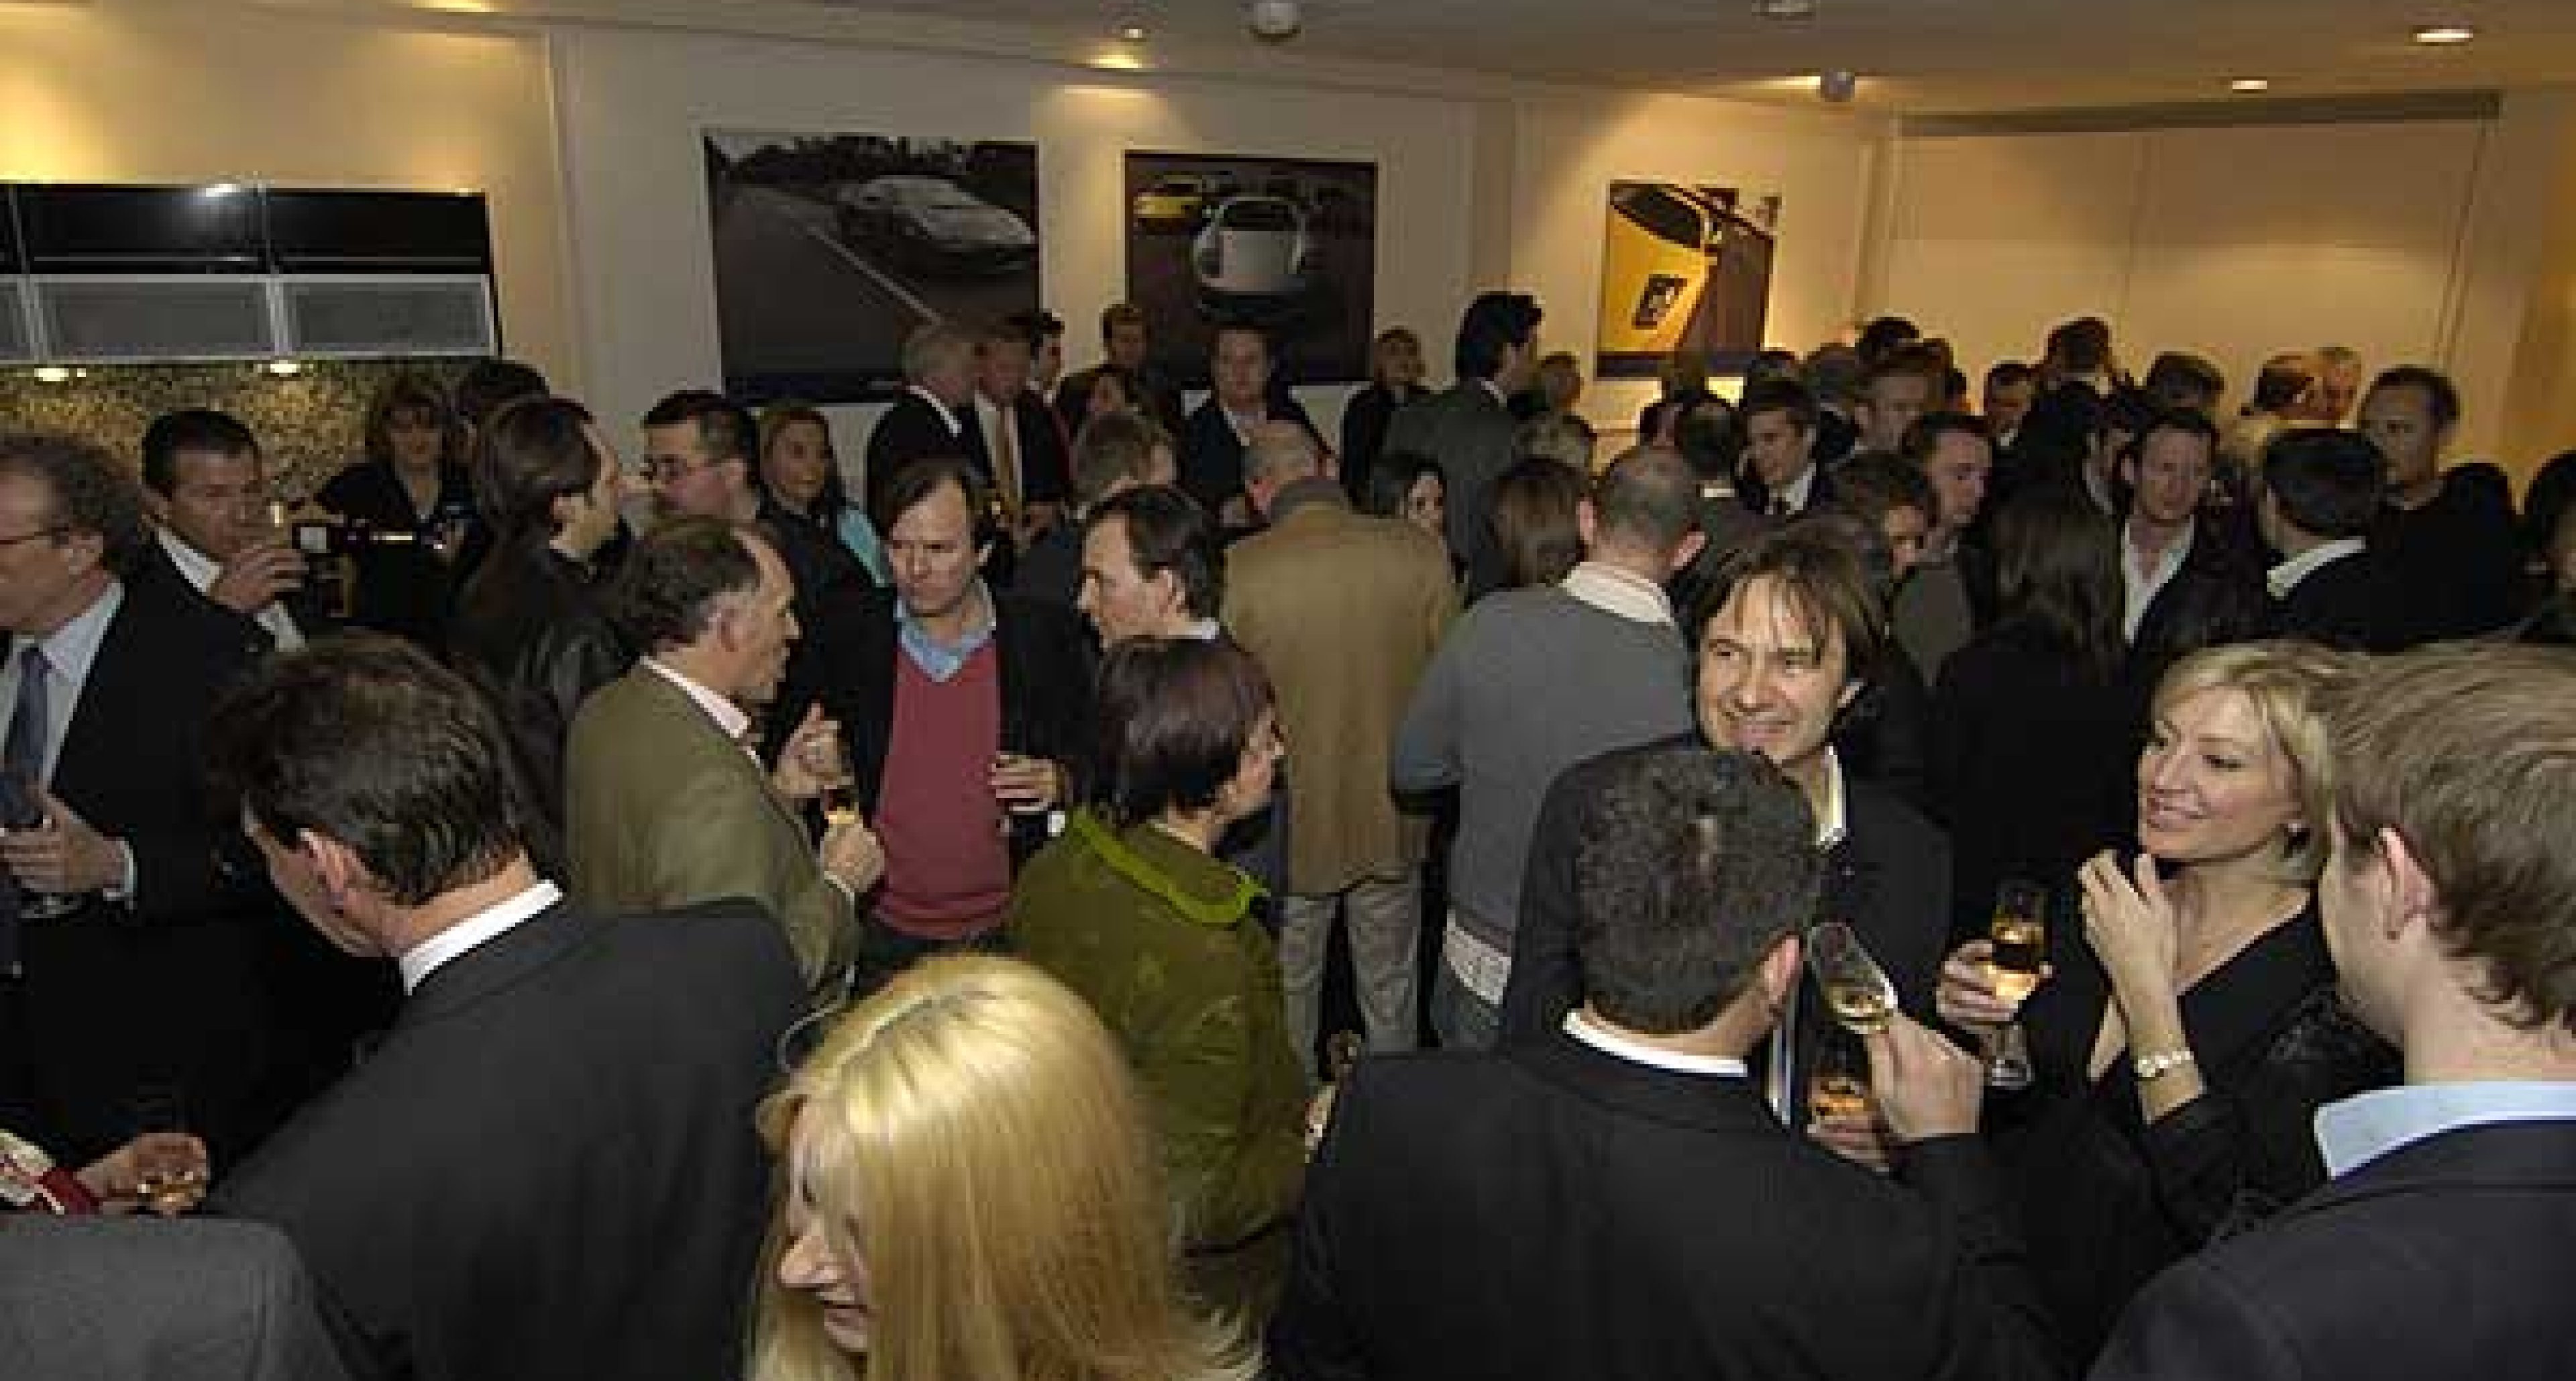 The Segrave Club Opens in London